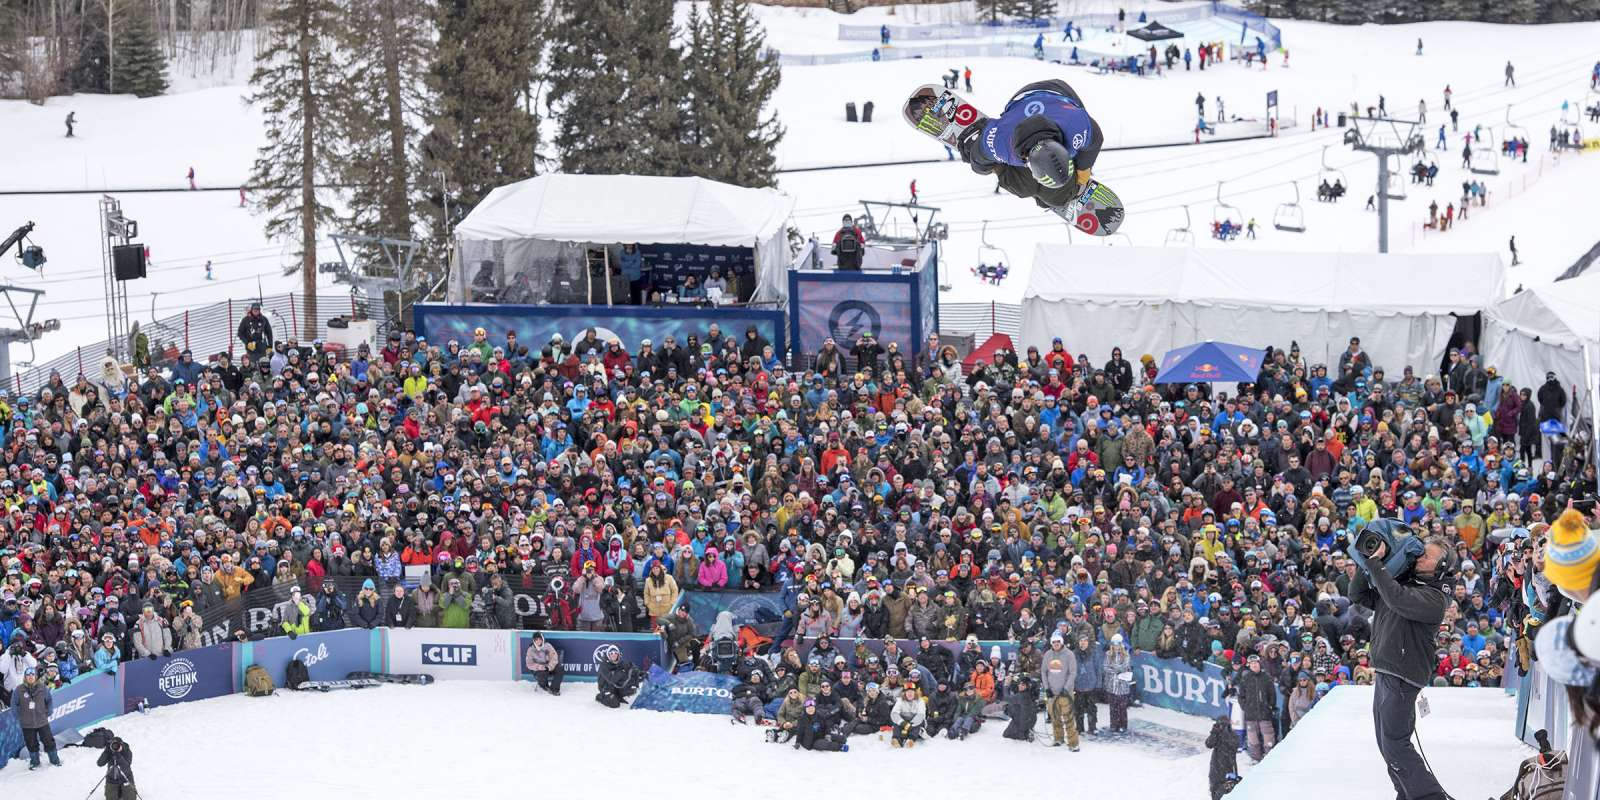 Ayumu Hirano's win at the Burton US Open